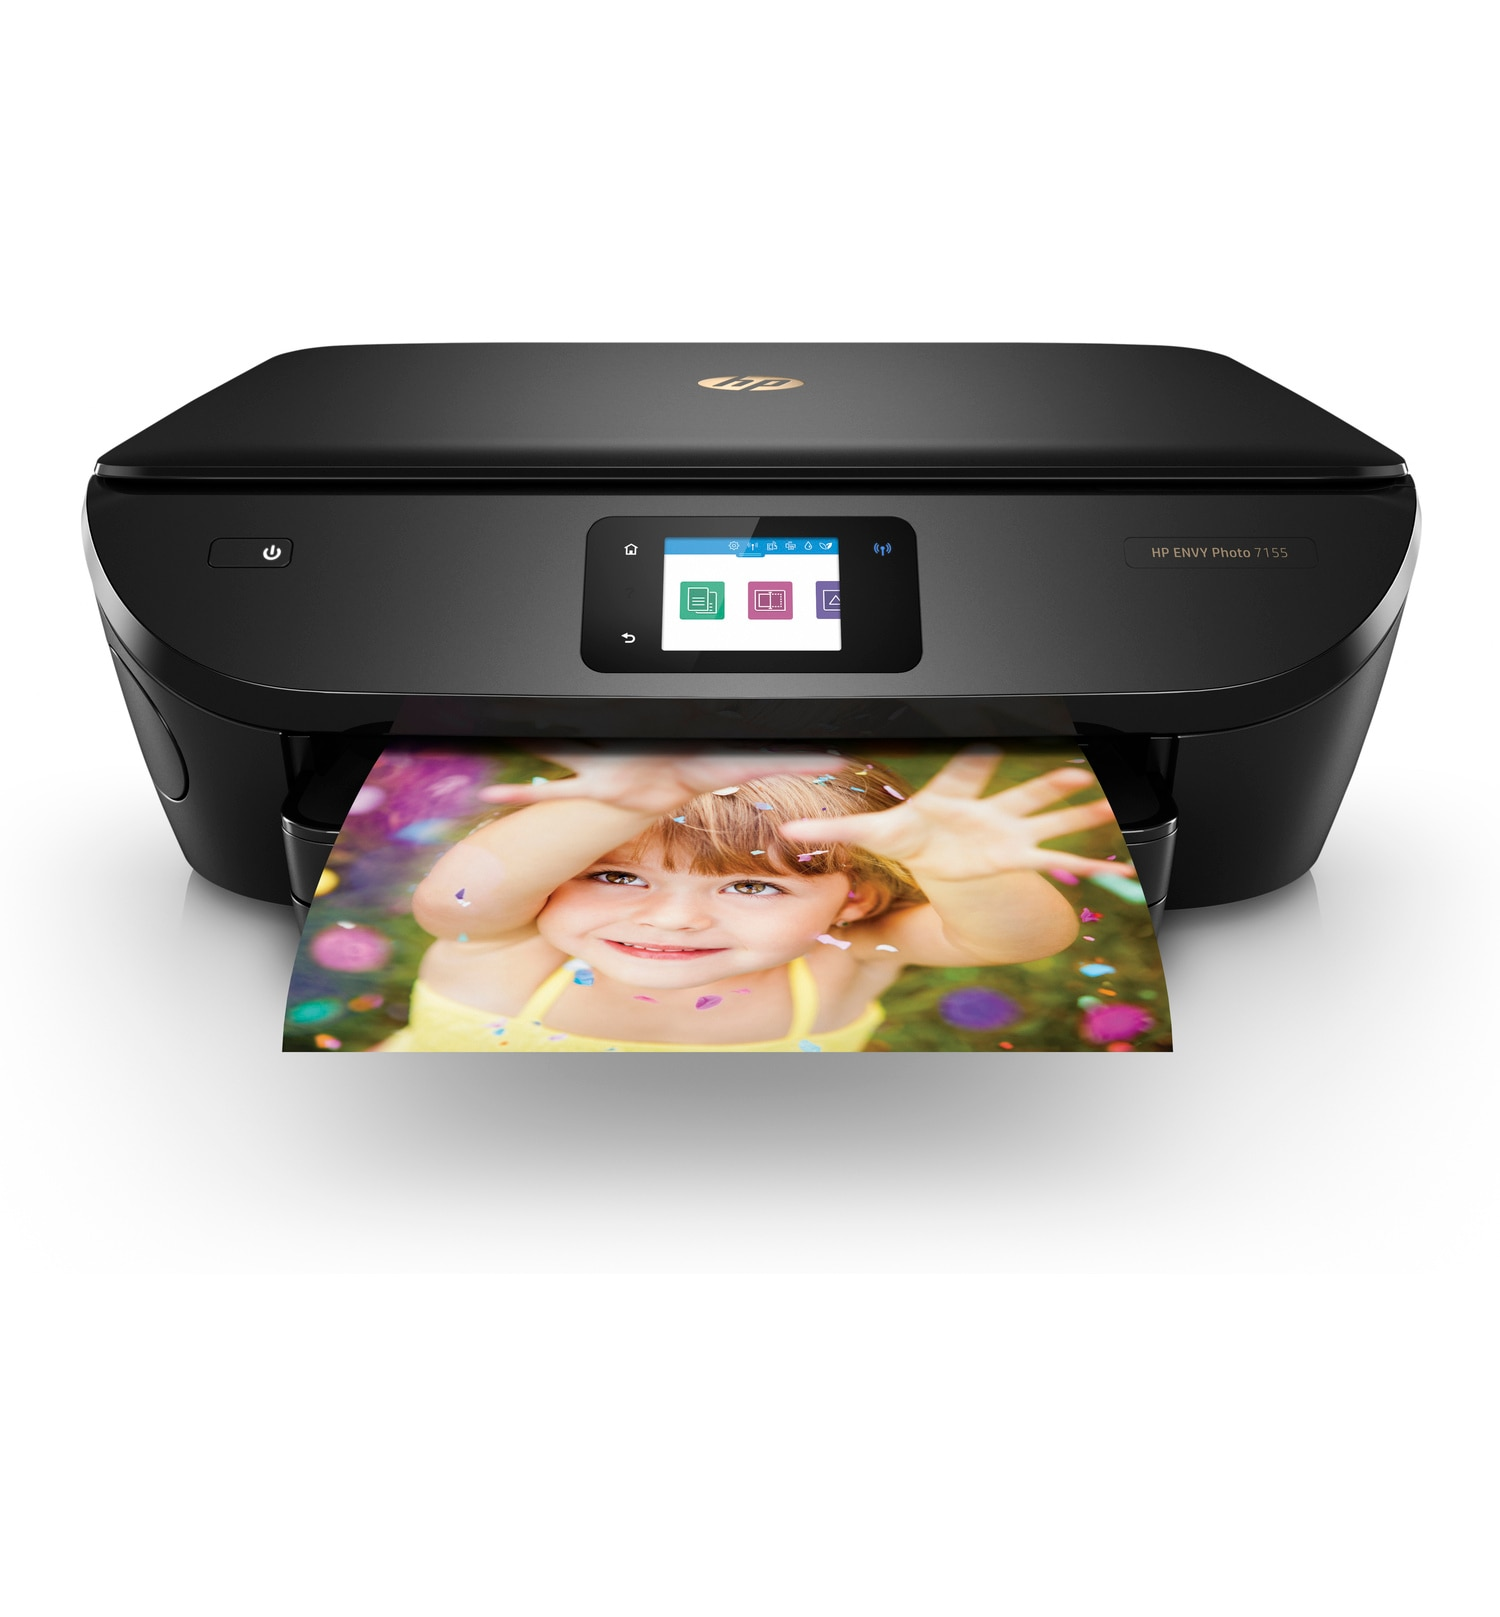 Hp Envy Photo 7155 All In One Printer With Wifi And Mobile Printing